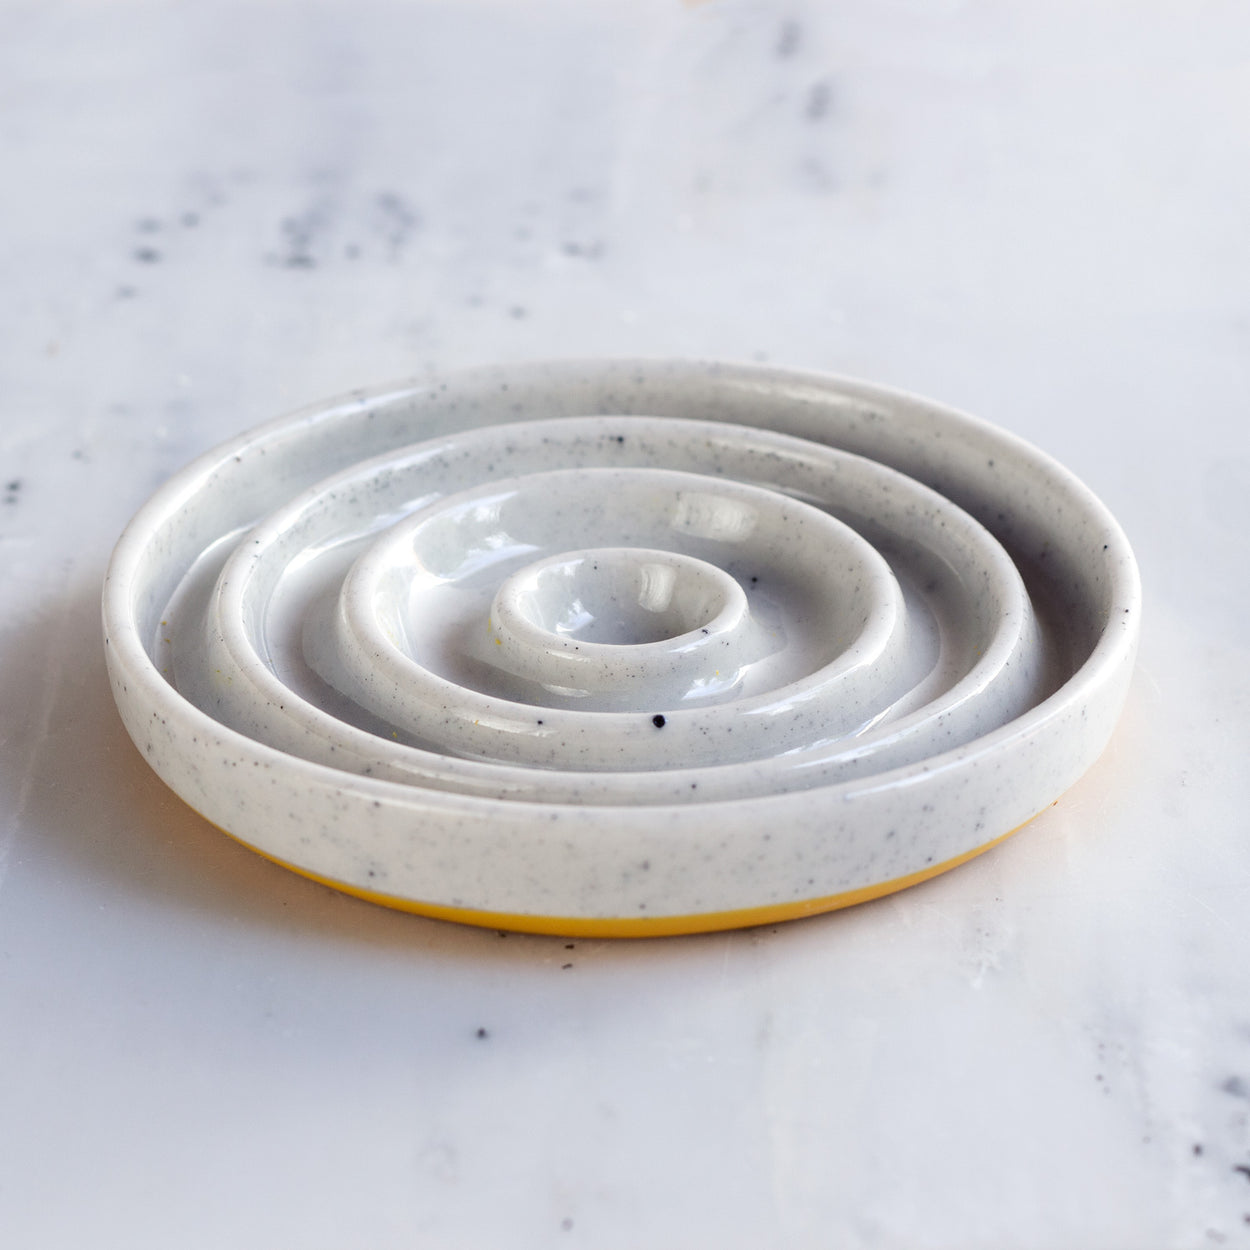 Concentric Soap Dishes